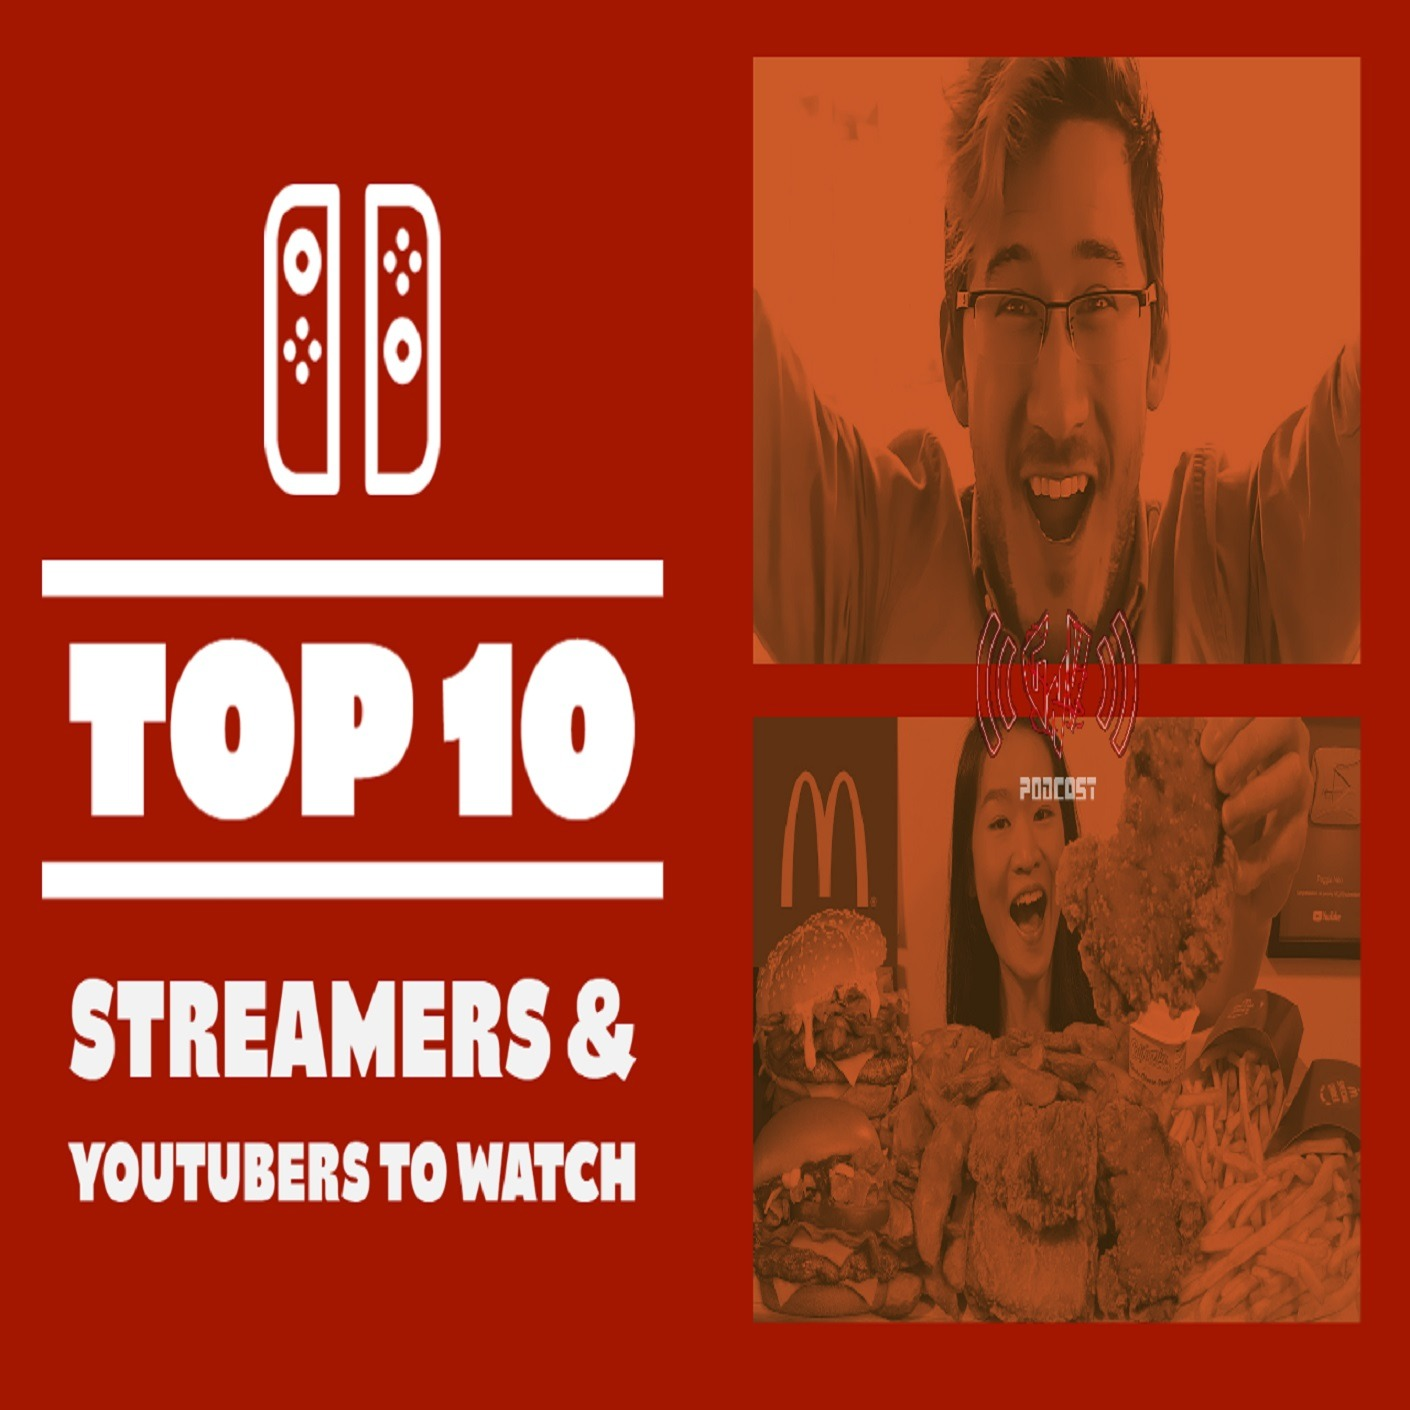 Top 10 Streamers & YouTubers To Watch